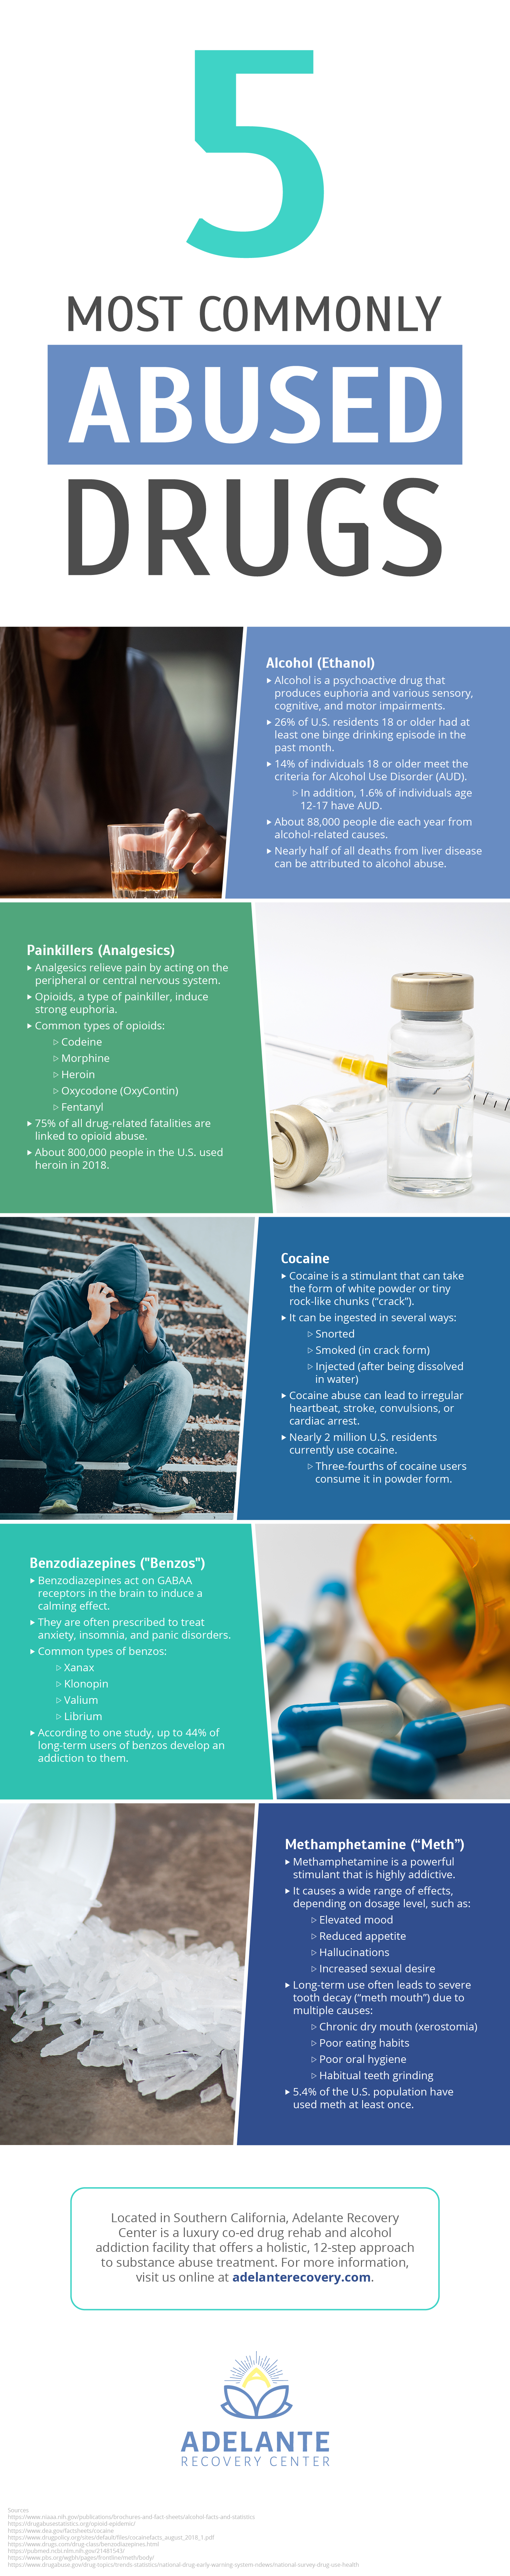 5 Most Commonly Abused Drugs Infographic